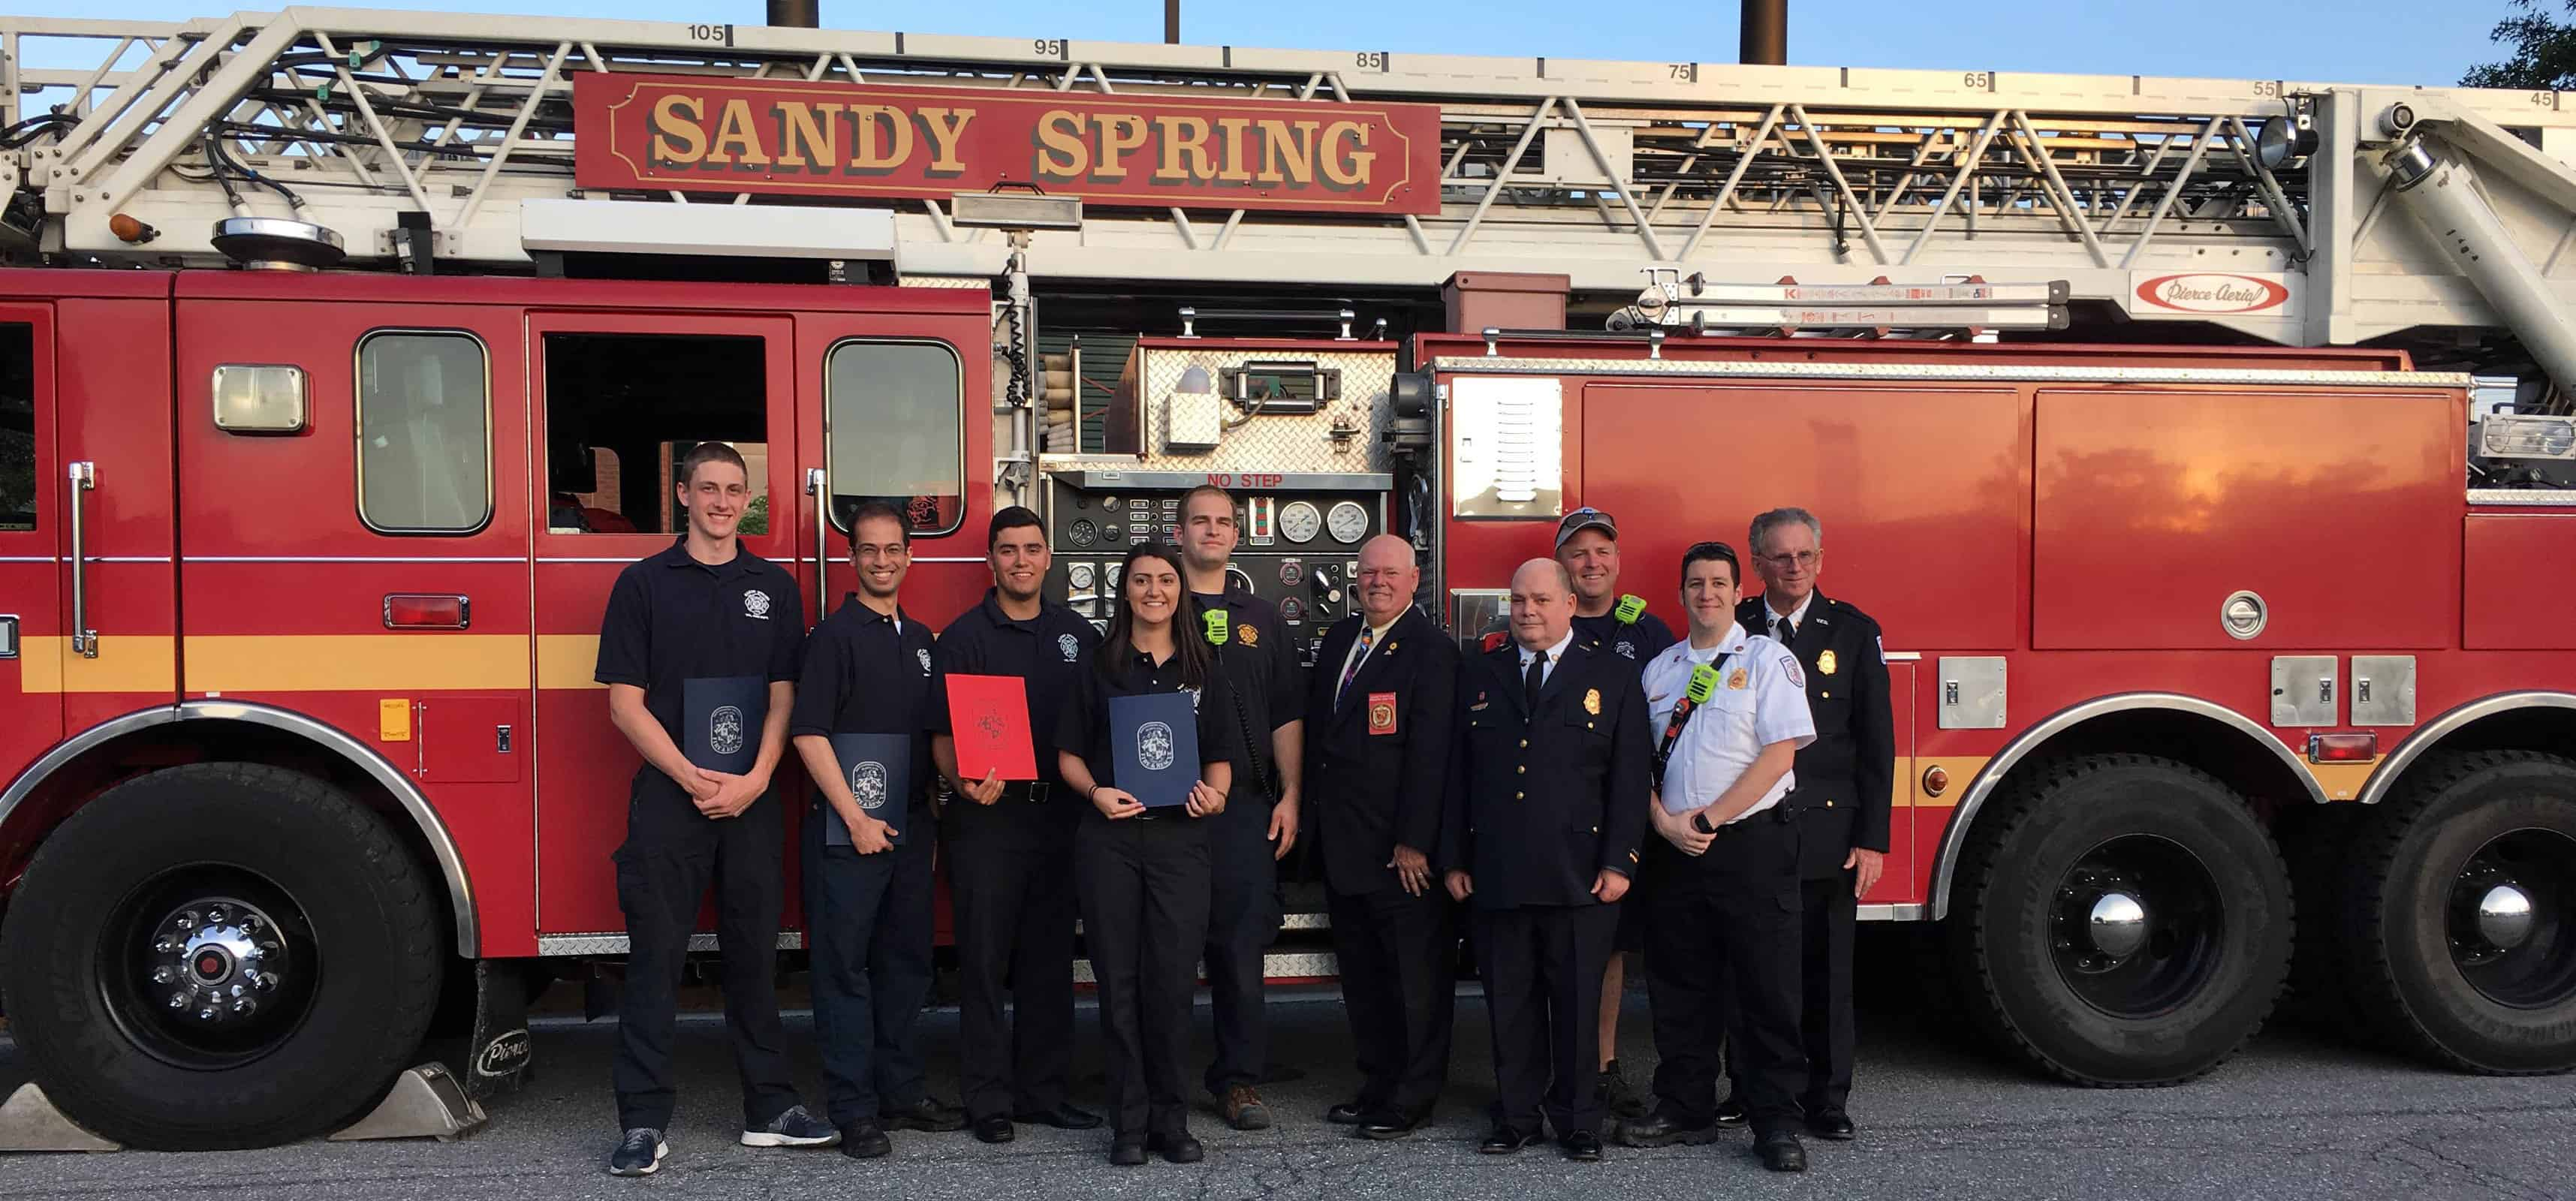 Work on the specialty Fire safety